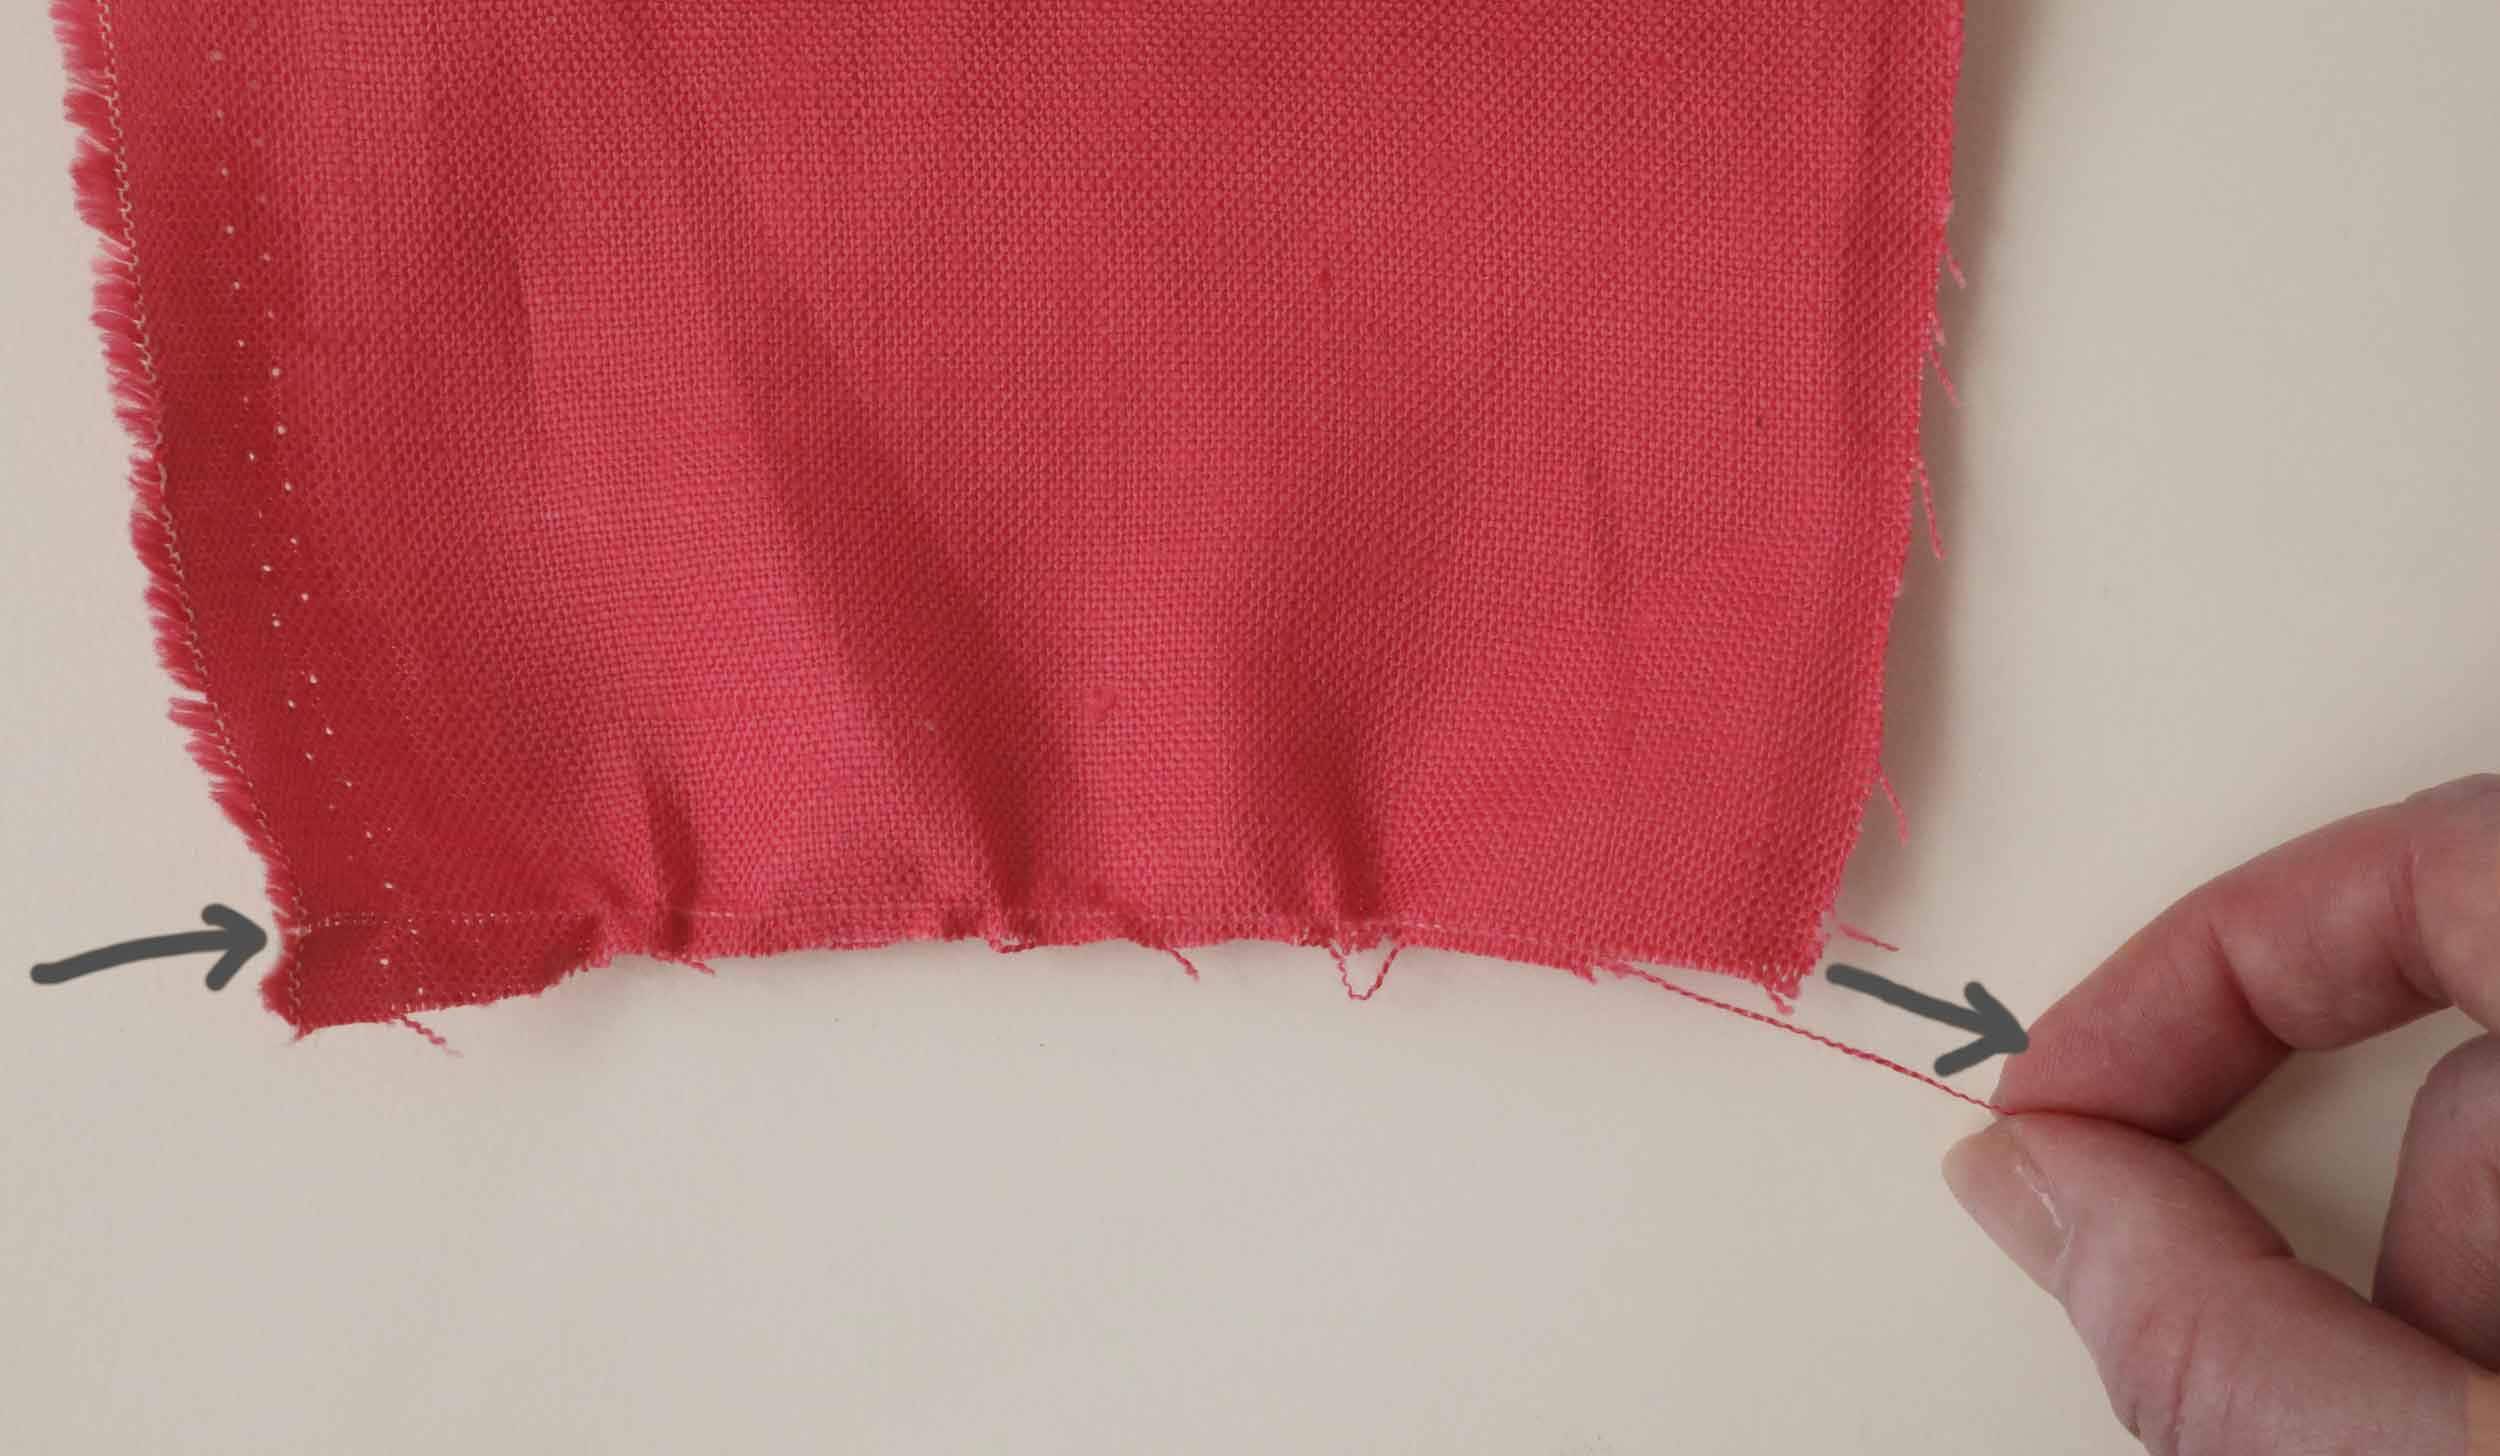 Pulling a thread in linen fabric is the best way to find what is square. This is important when lining up embroidery, as well as making napkins or anything else that you don't want to end up a trapezoid.